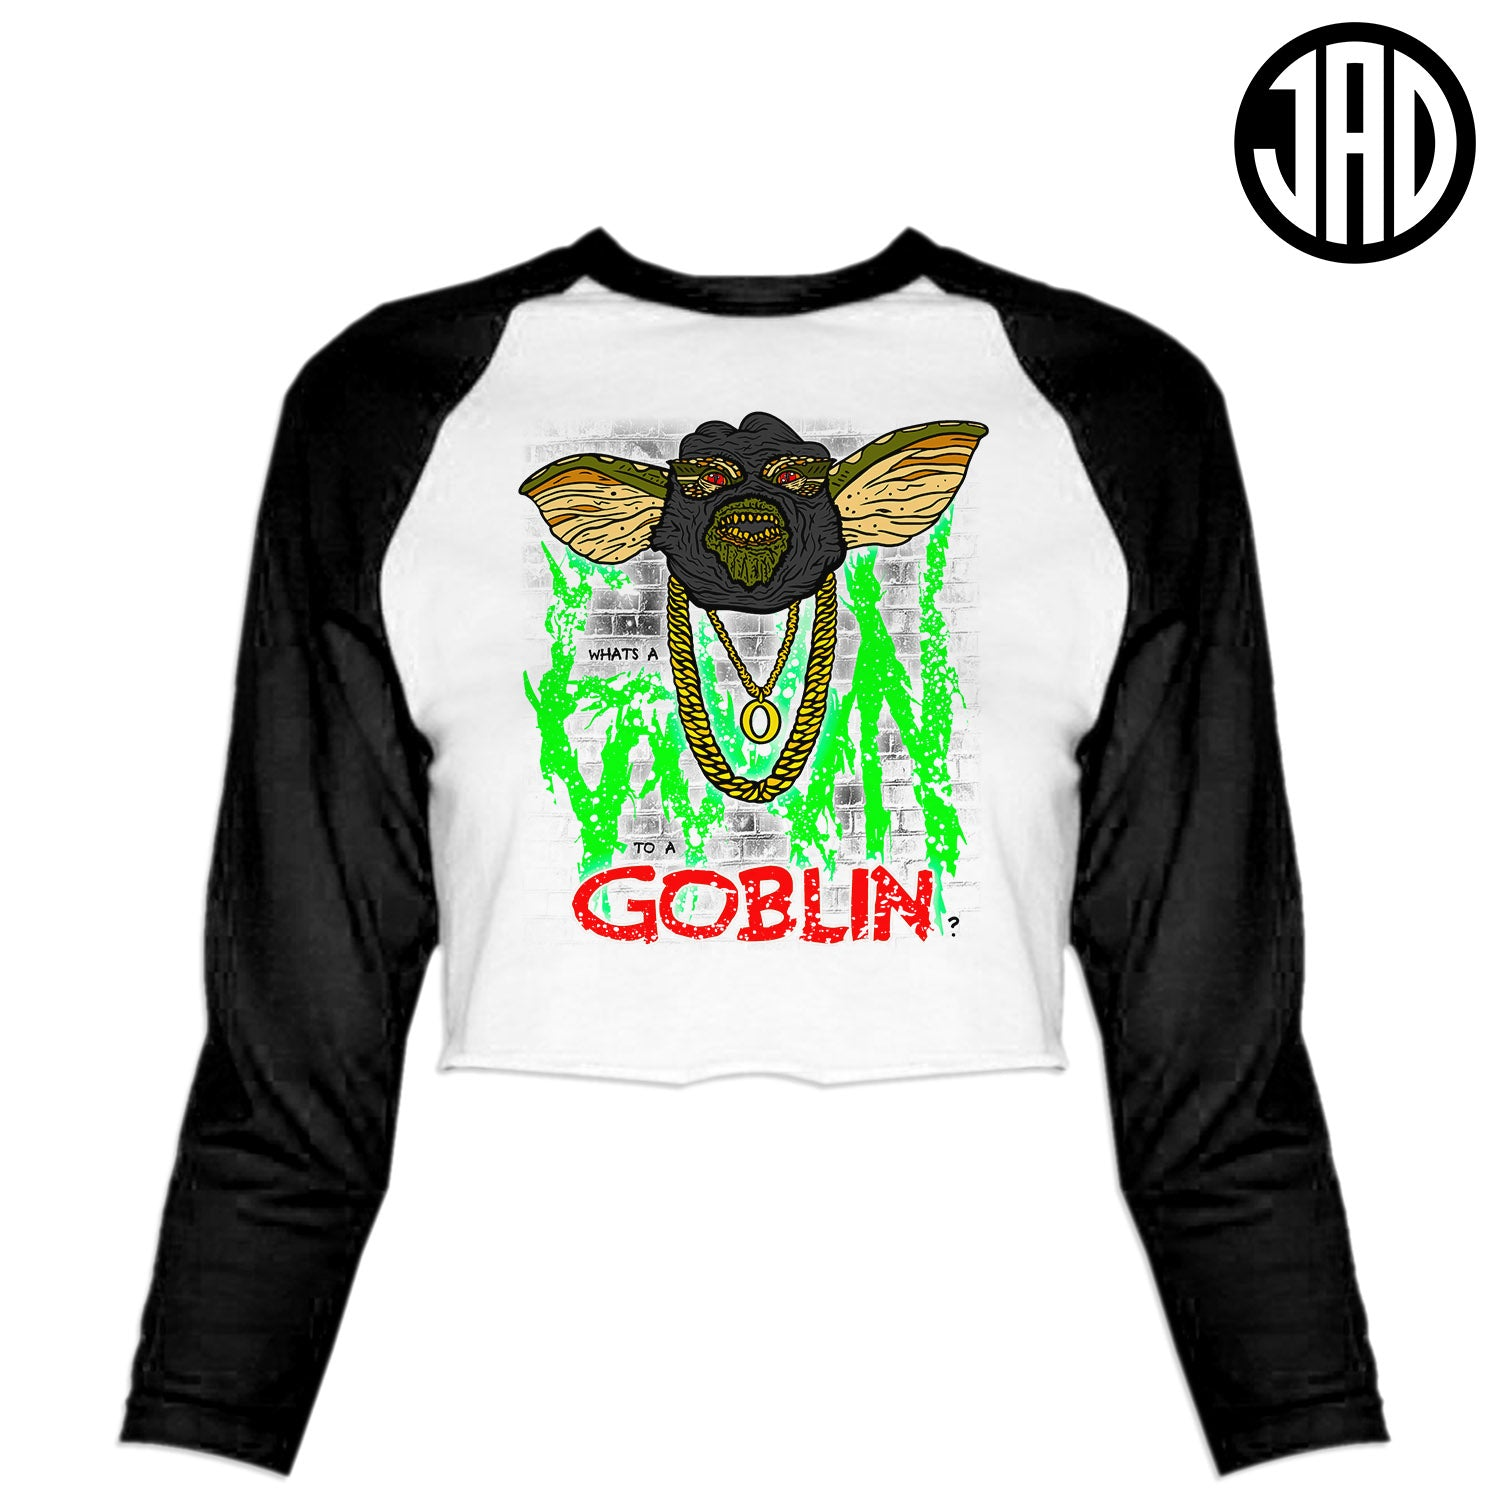 Goon To A Goblin - Women's Cropped Baseball Tee